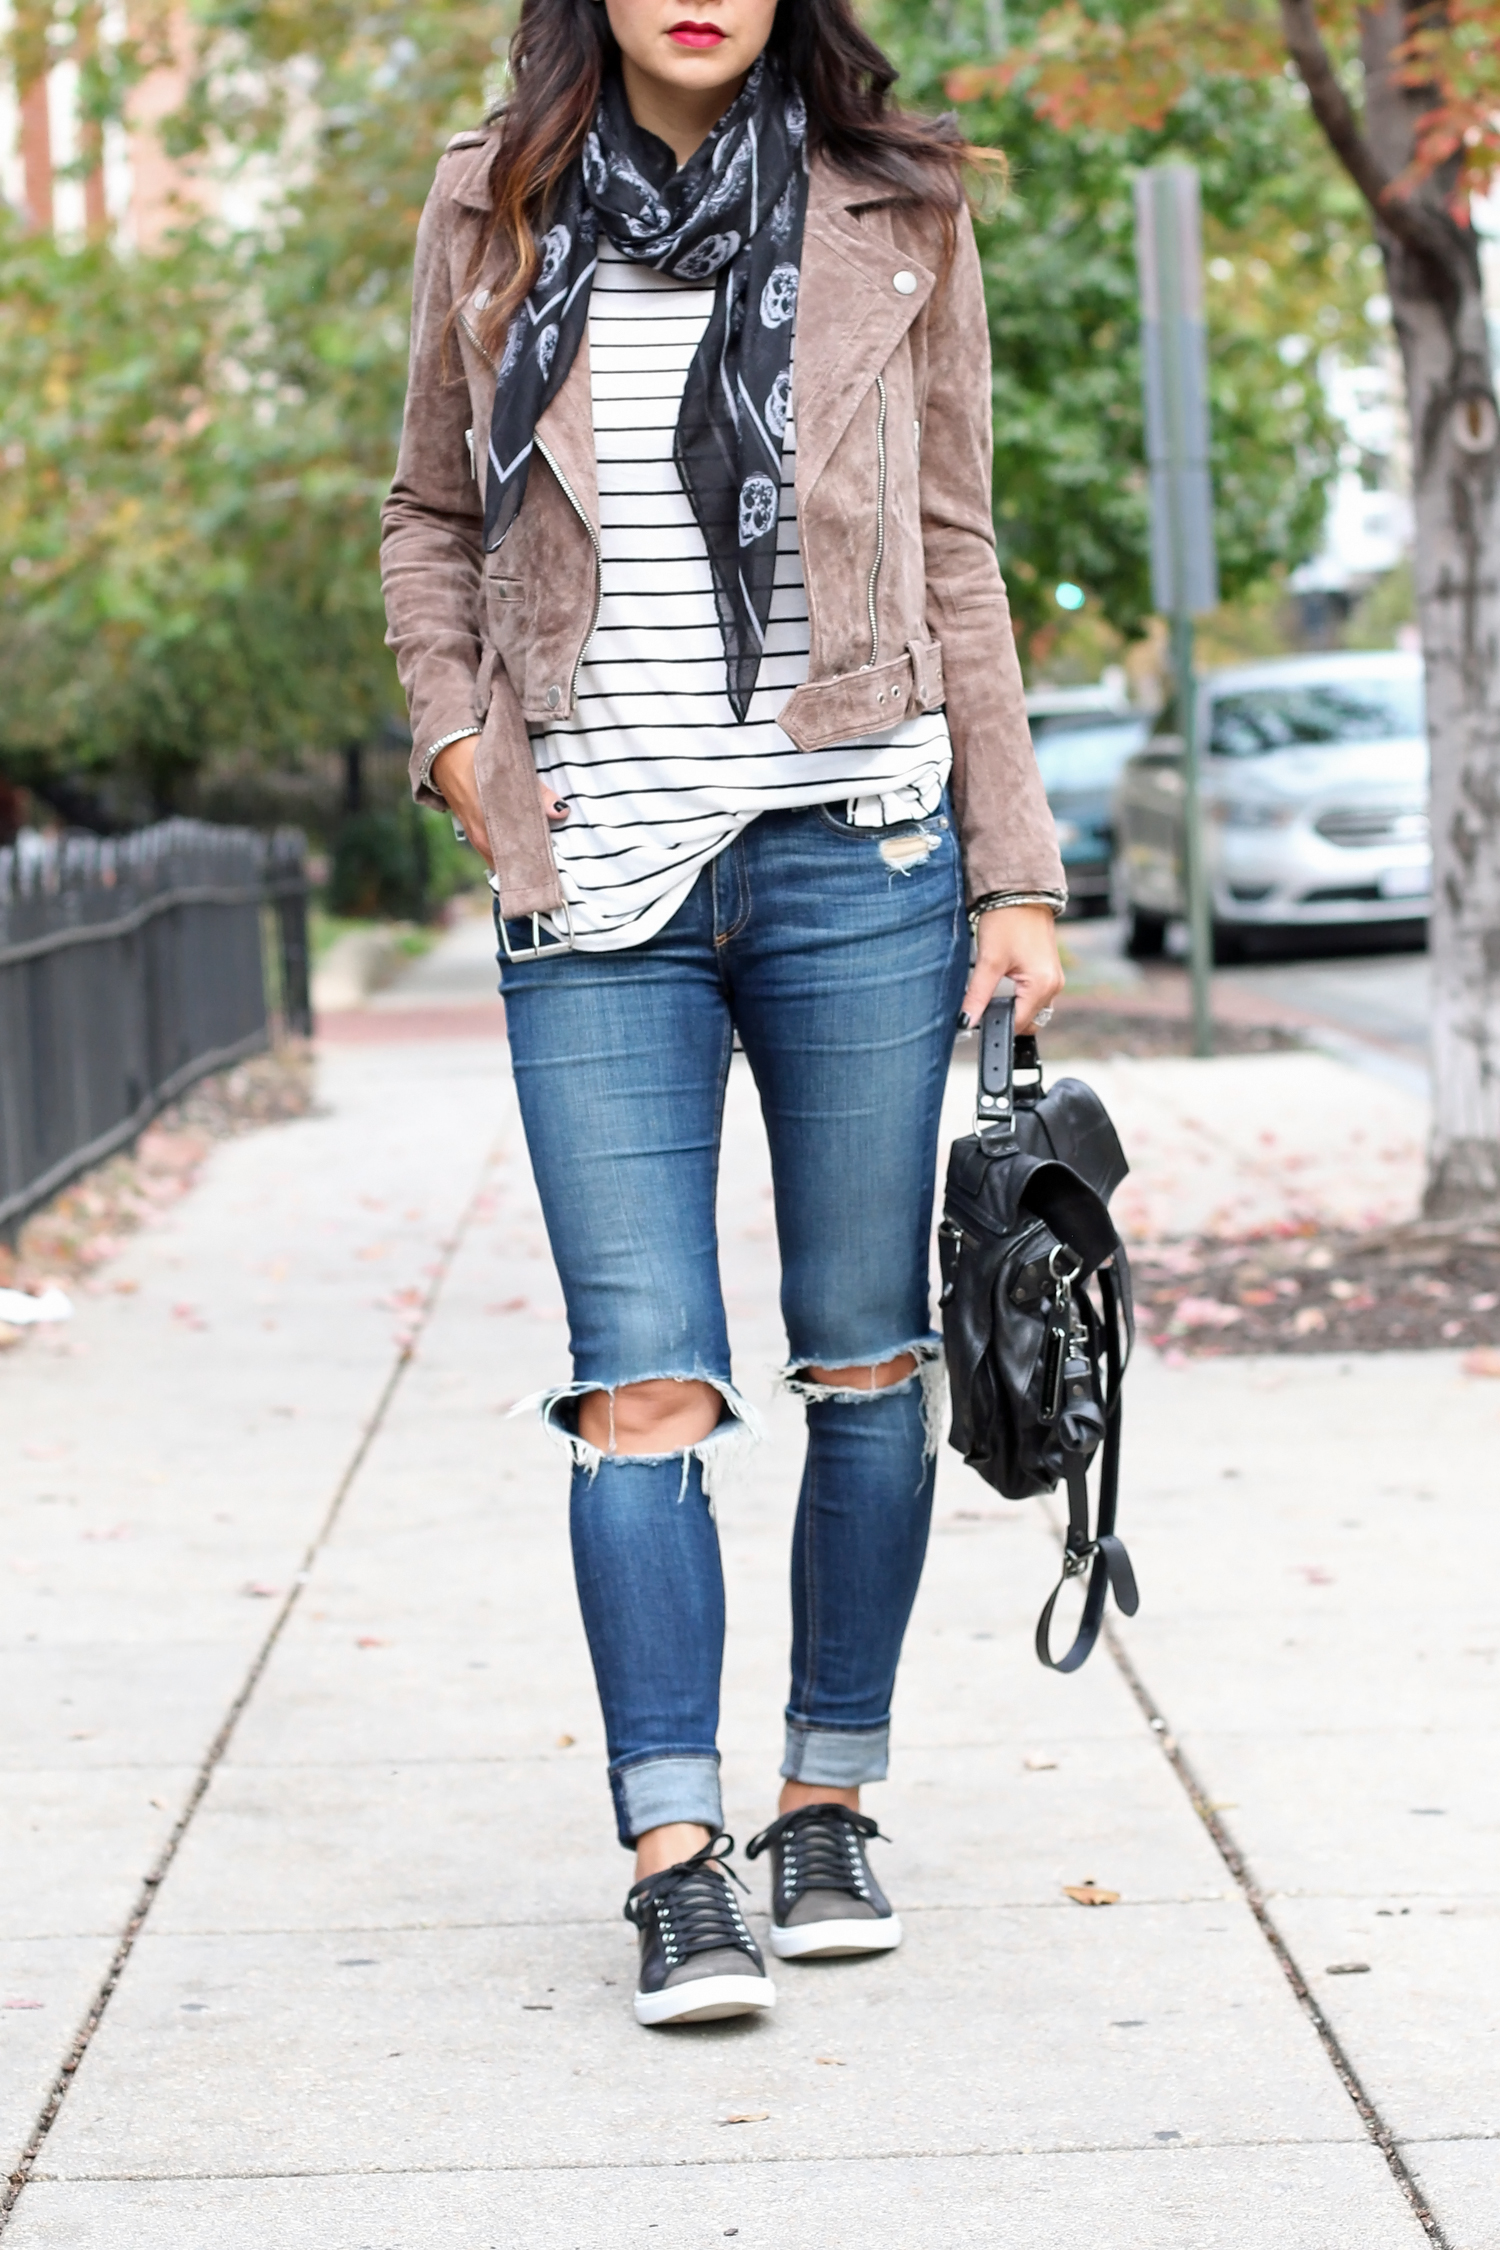 Sneaker and Leather Jacket Outfit